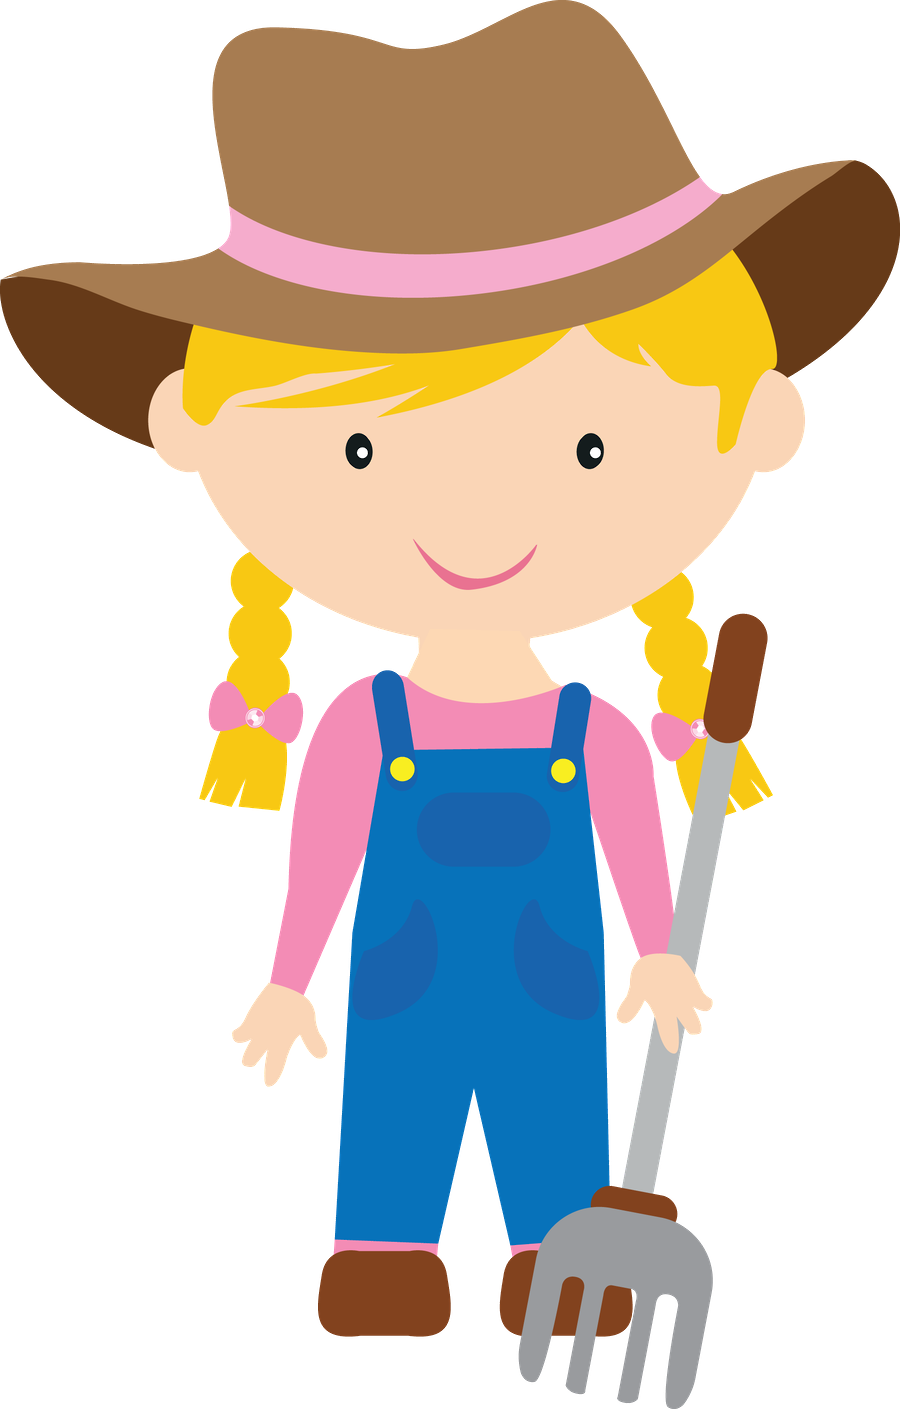 Woodland clipart kid. Fazenda minus farm pinterest